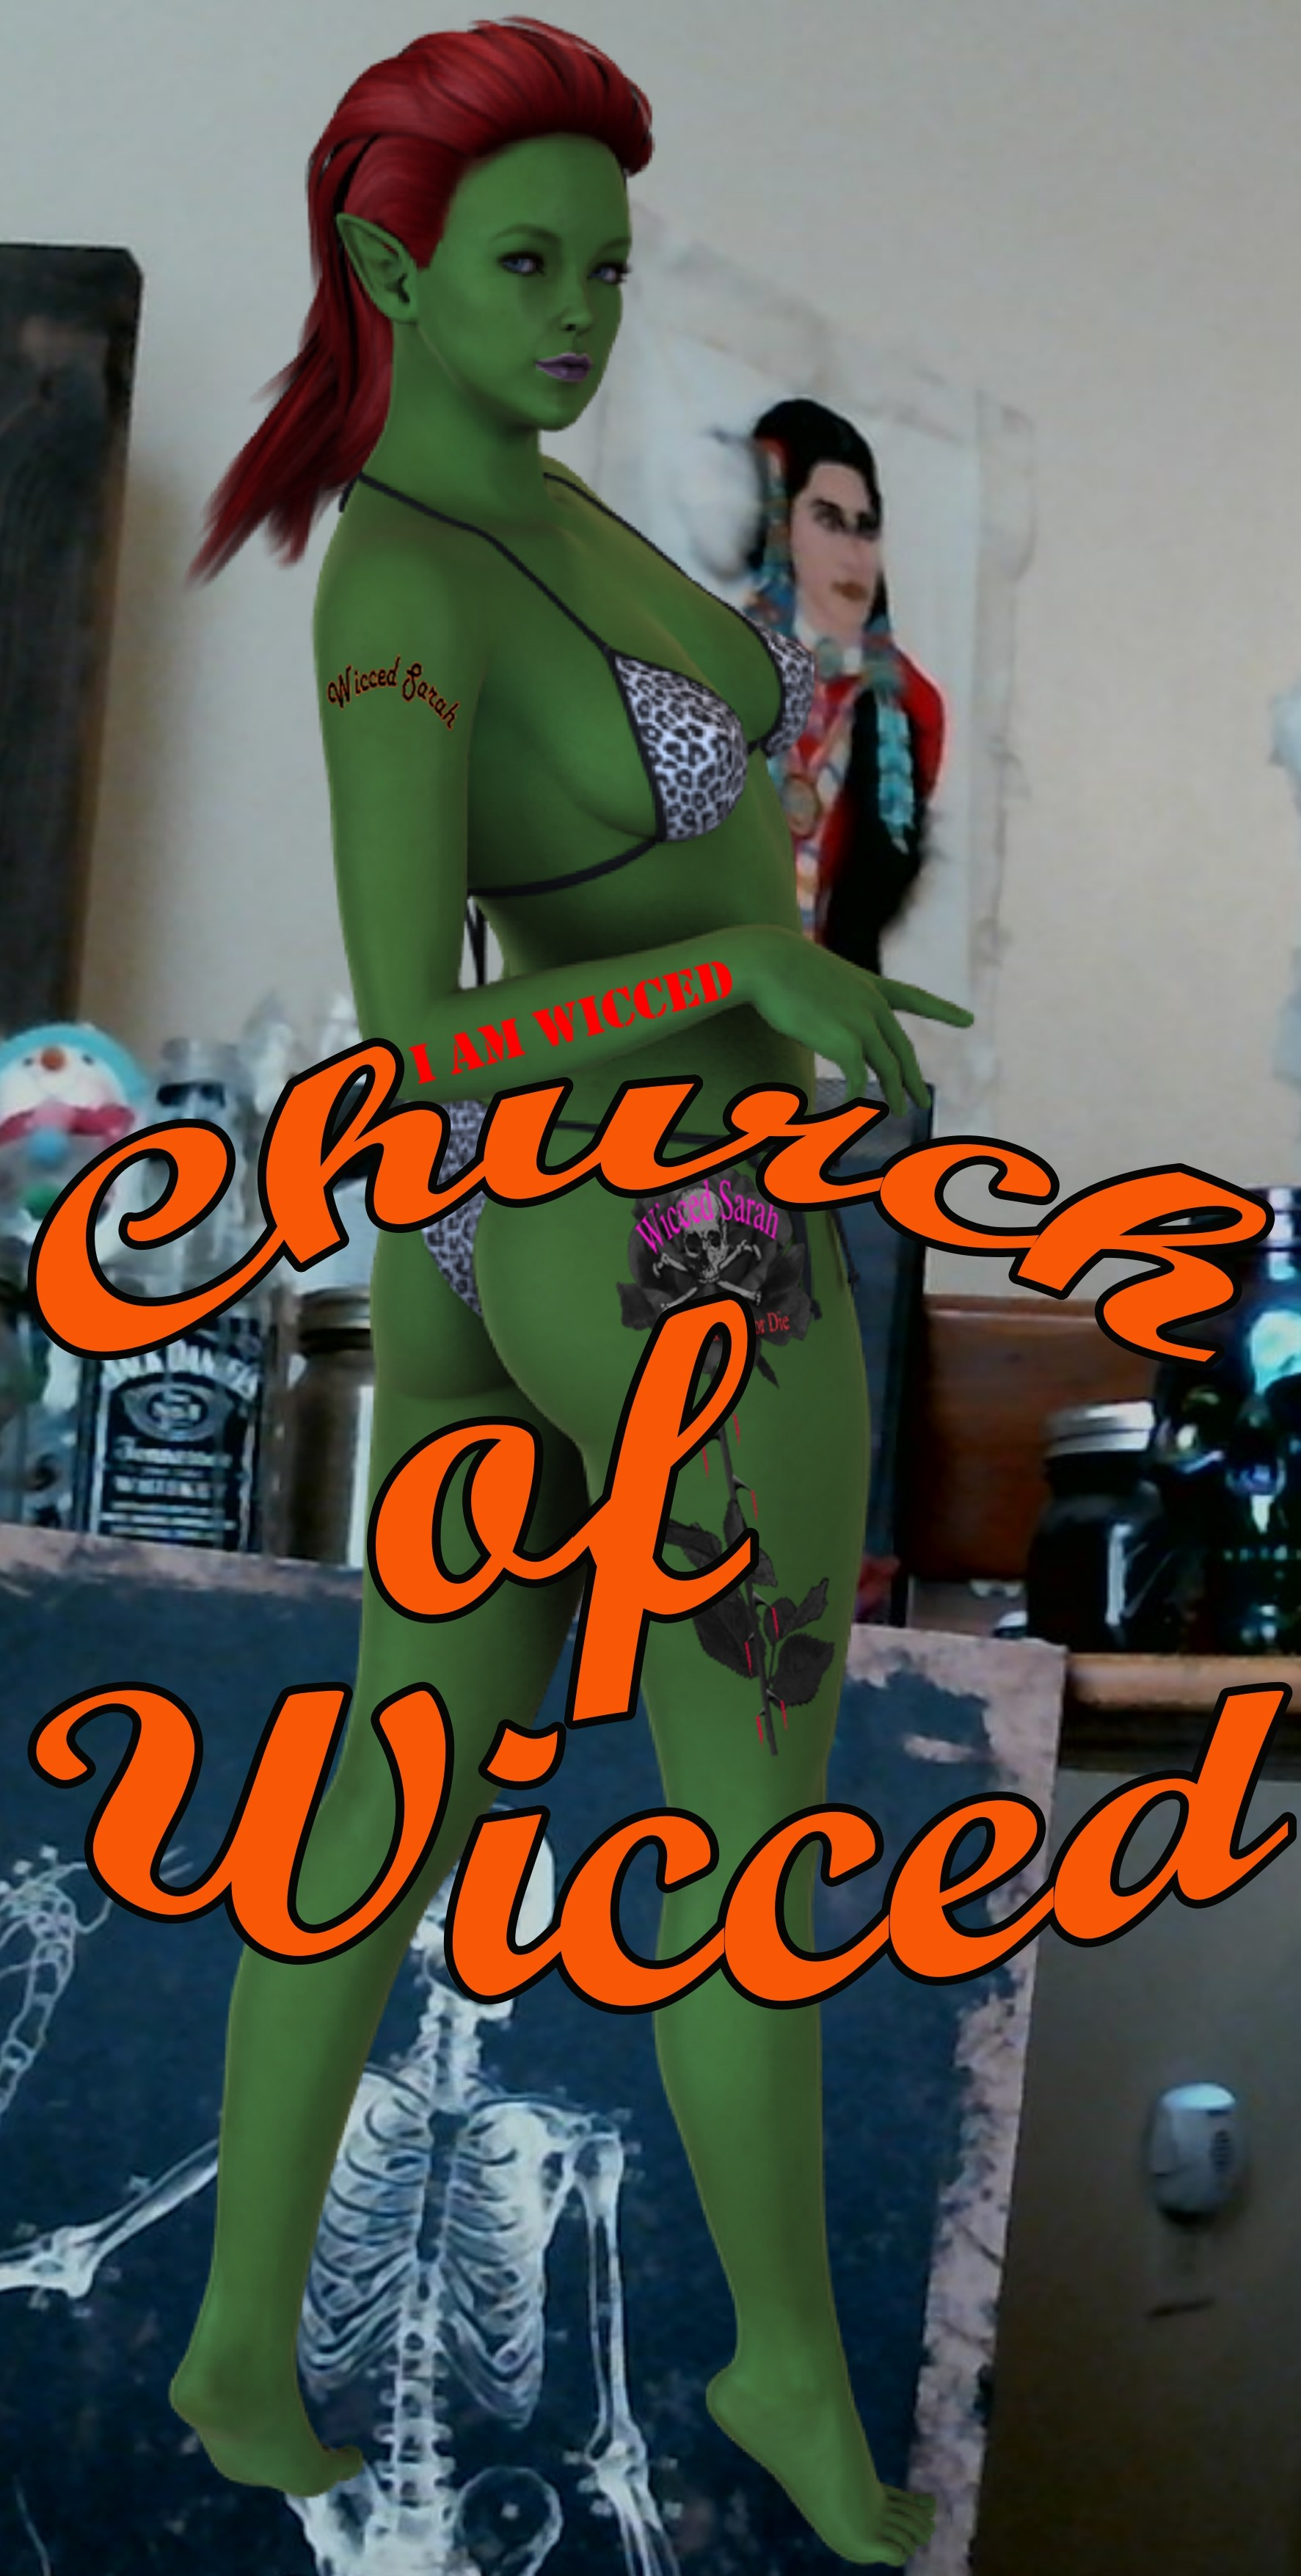 Church of Wicced band logo